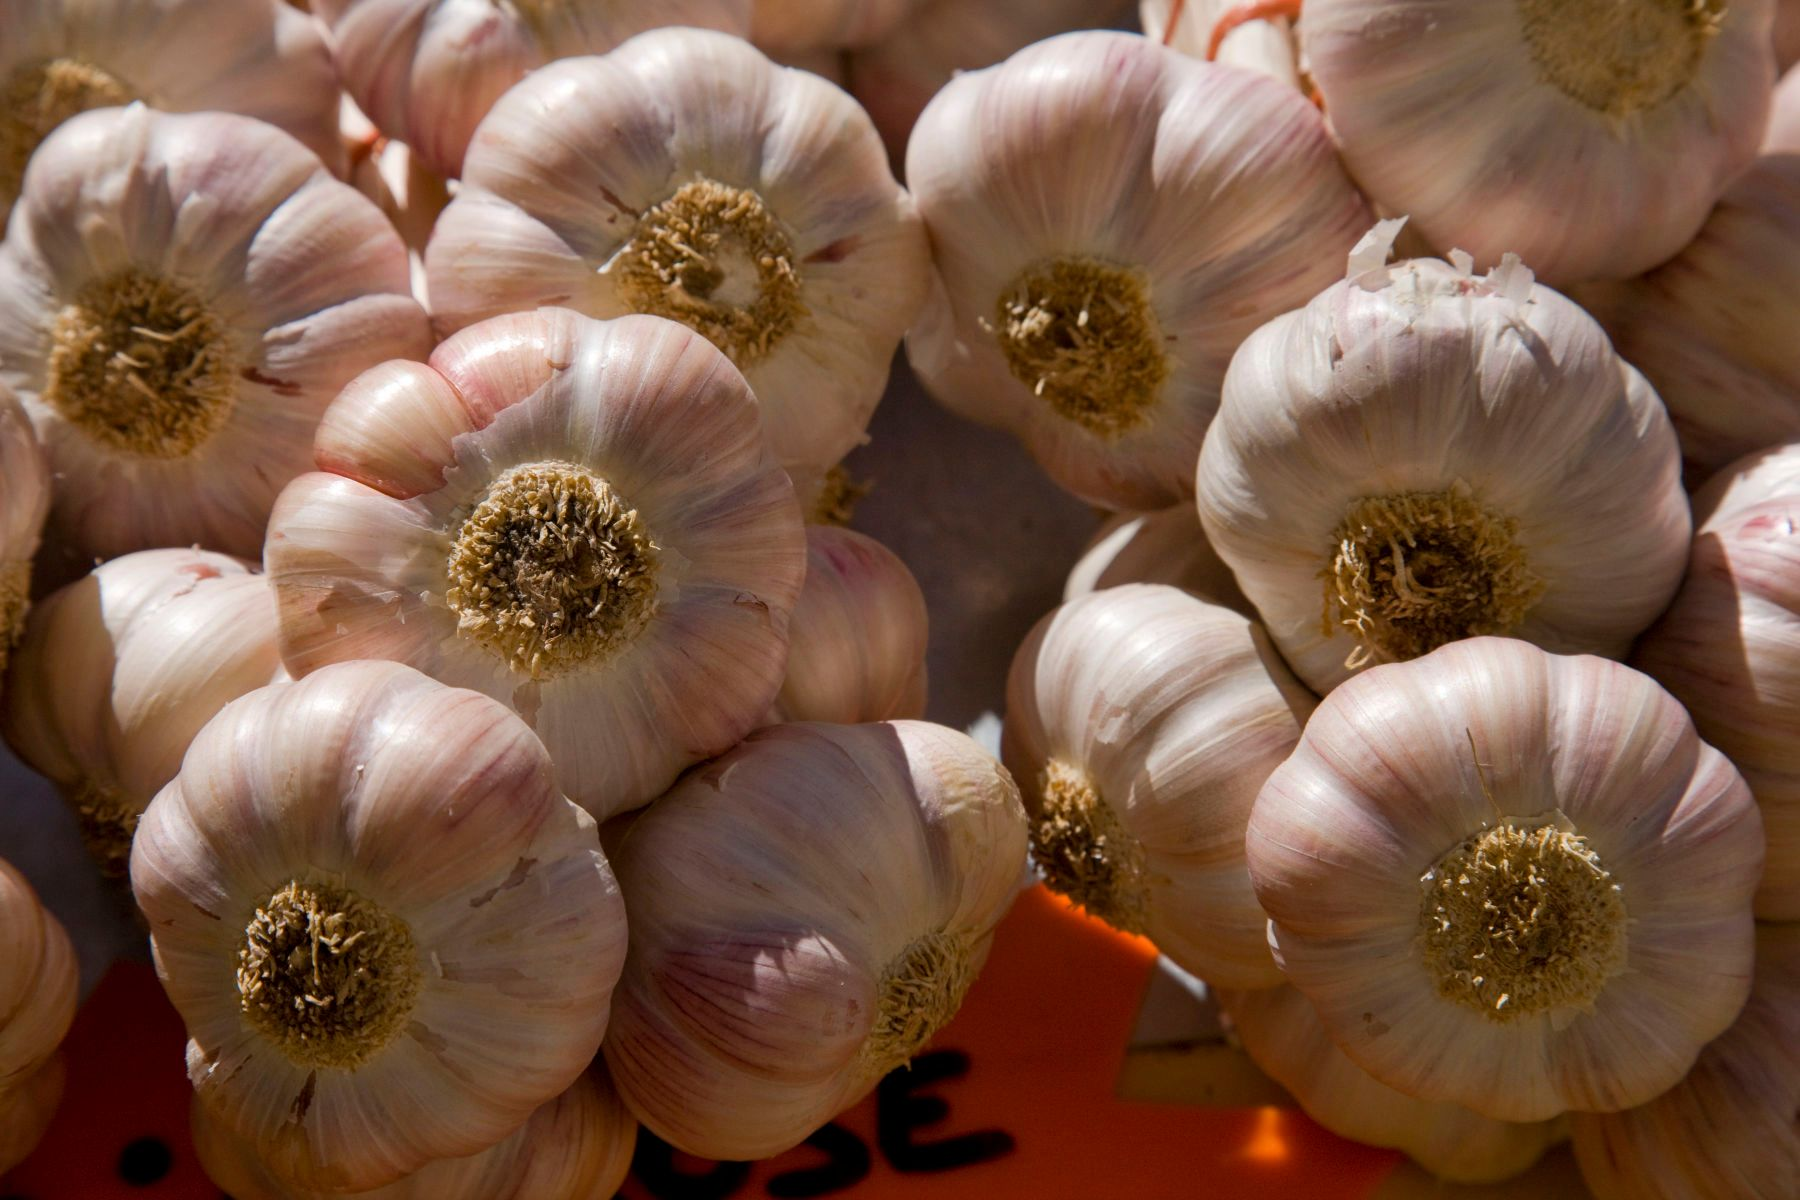 1r5456_gordesmarketgarlic_2j8z1768